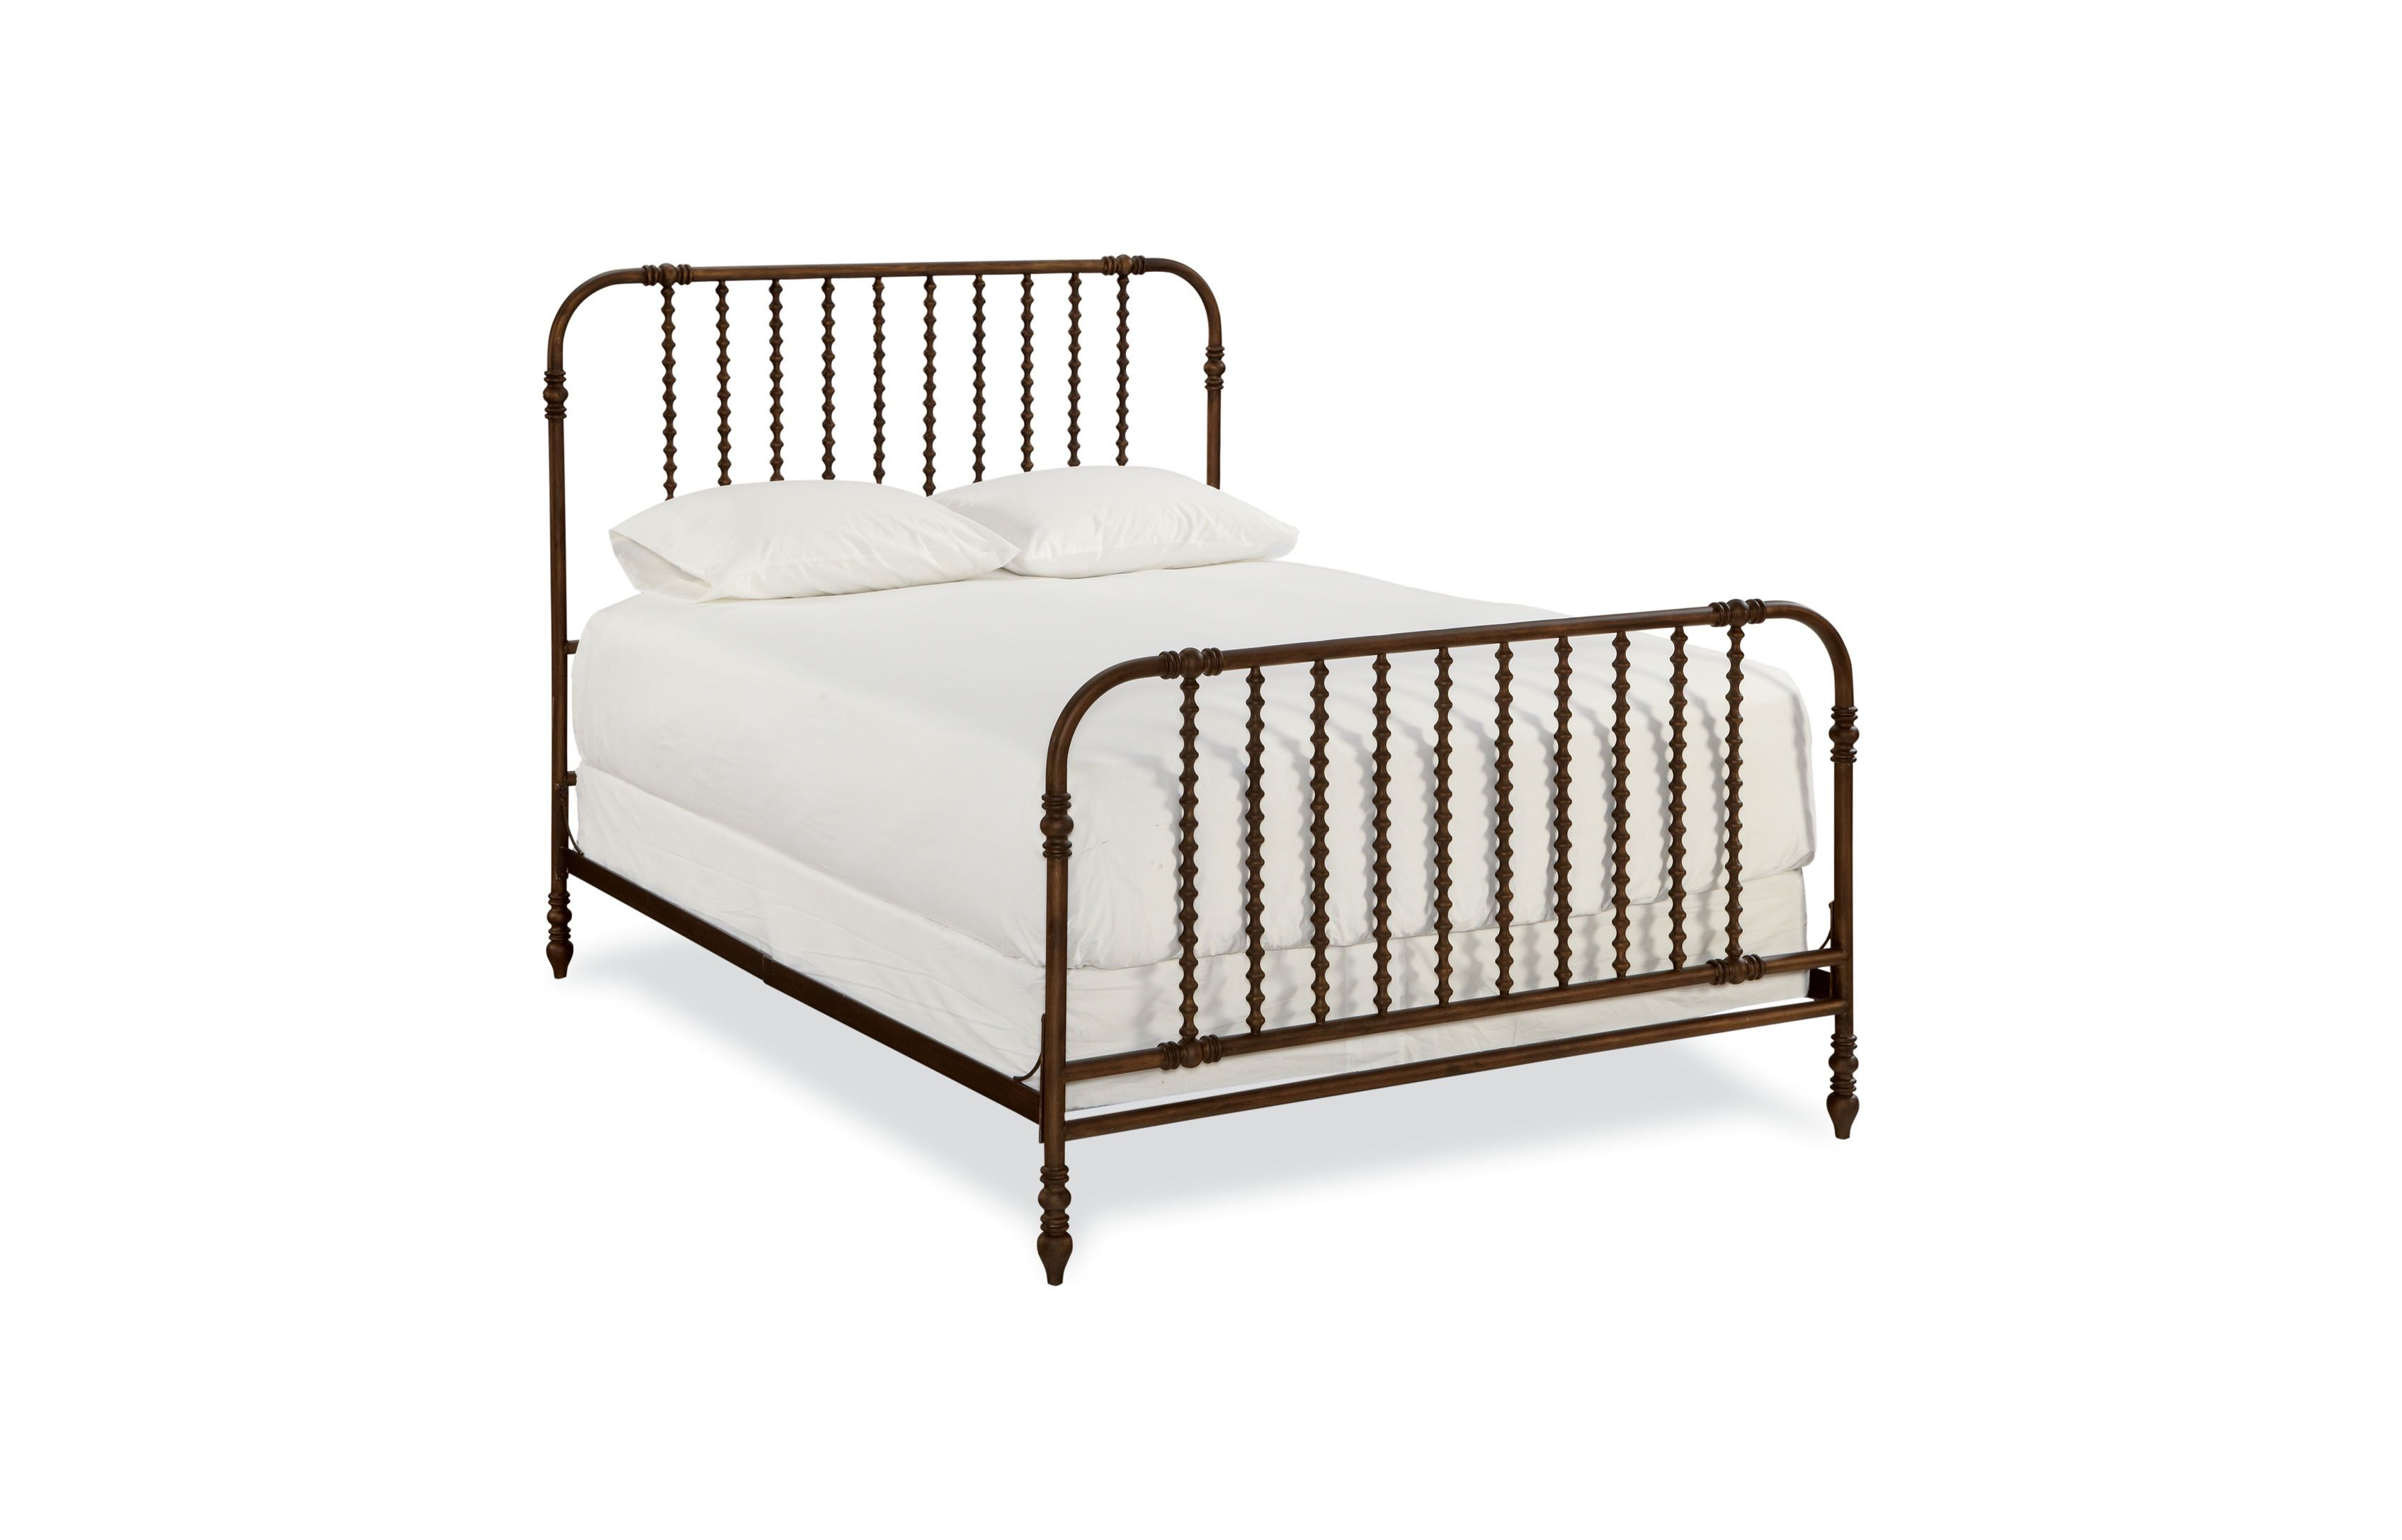 Jenny Lind style bed frame Guest room bed, Universal